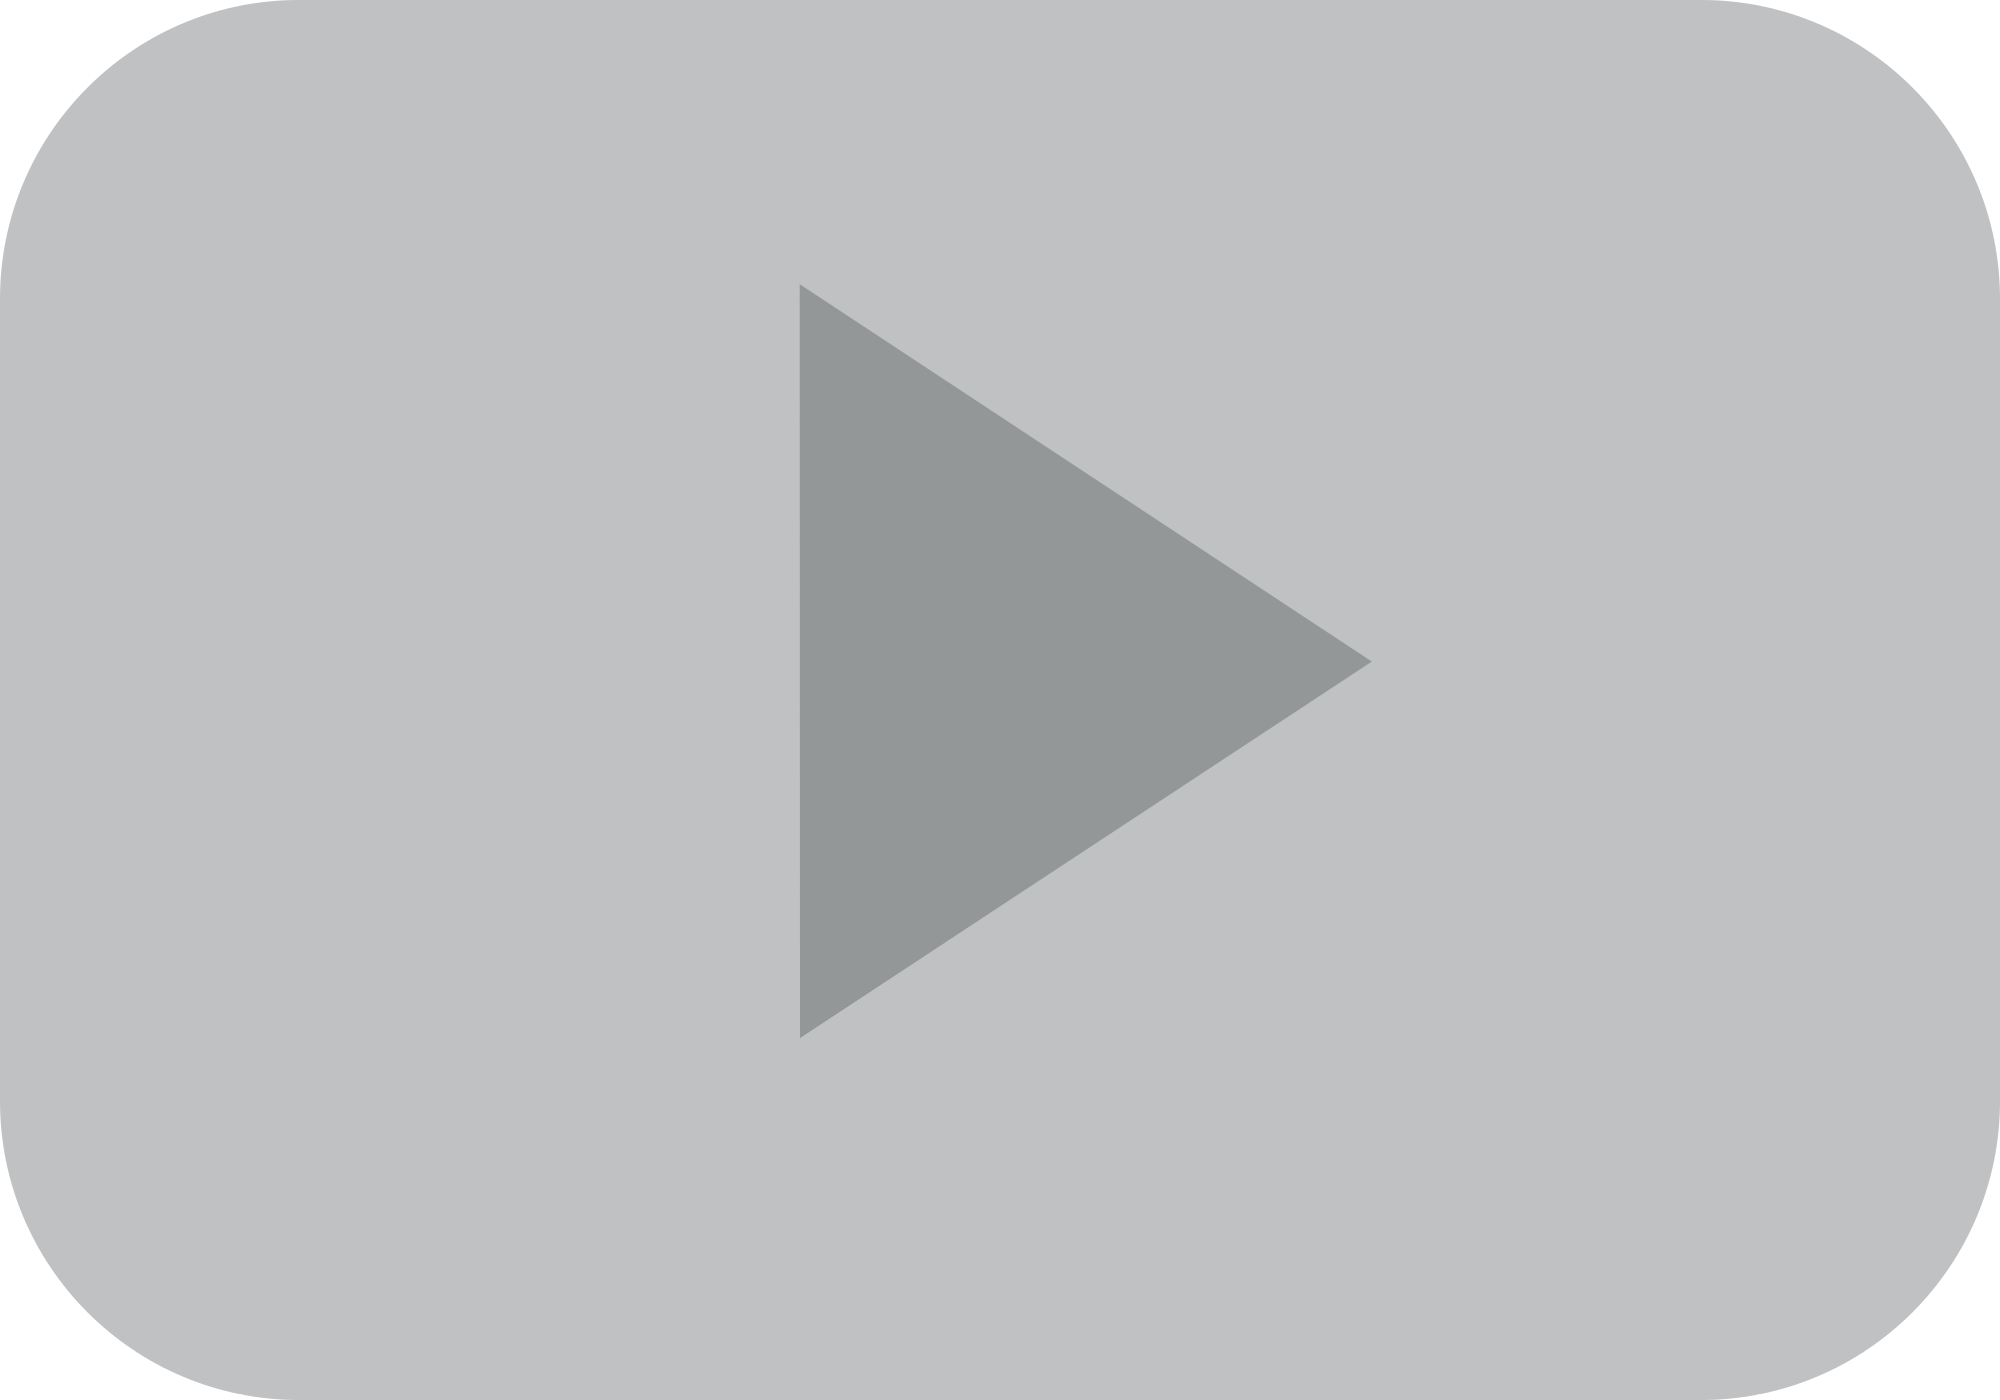 2000x1400 Youtube Play Button Png Transparent Image Png Mart